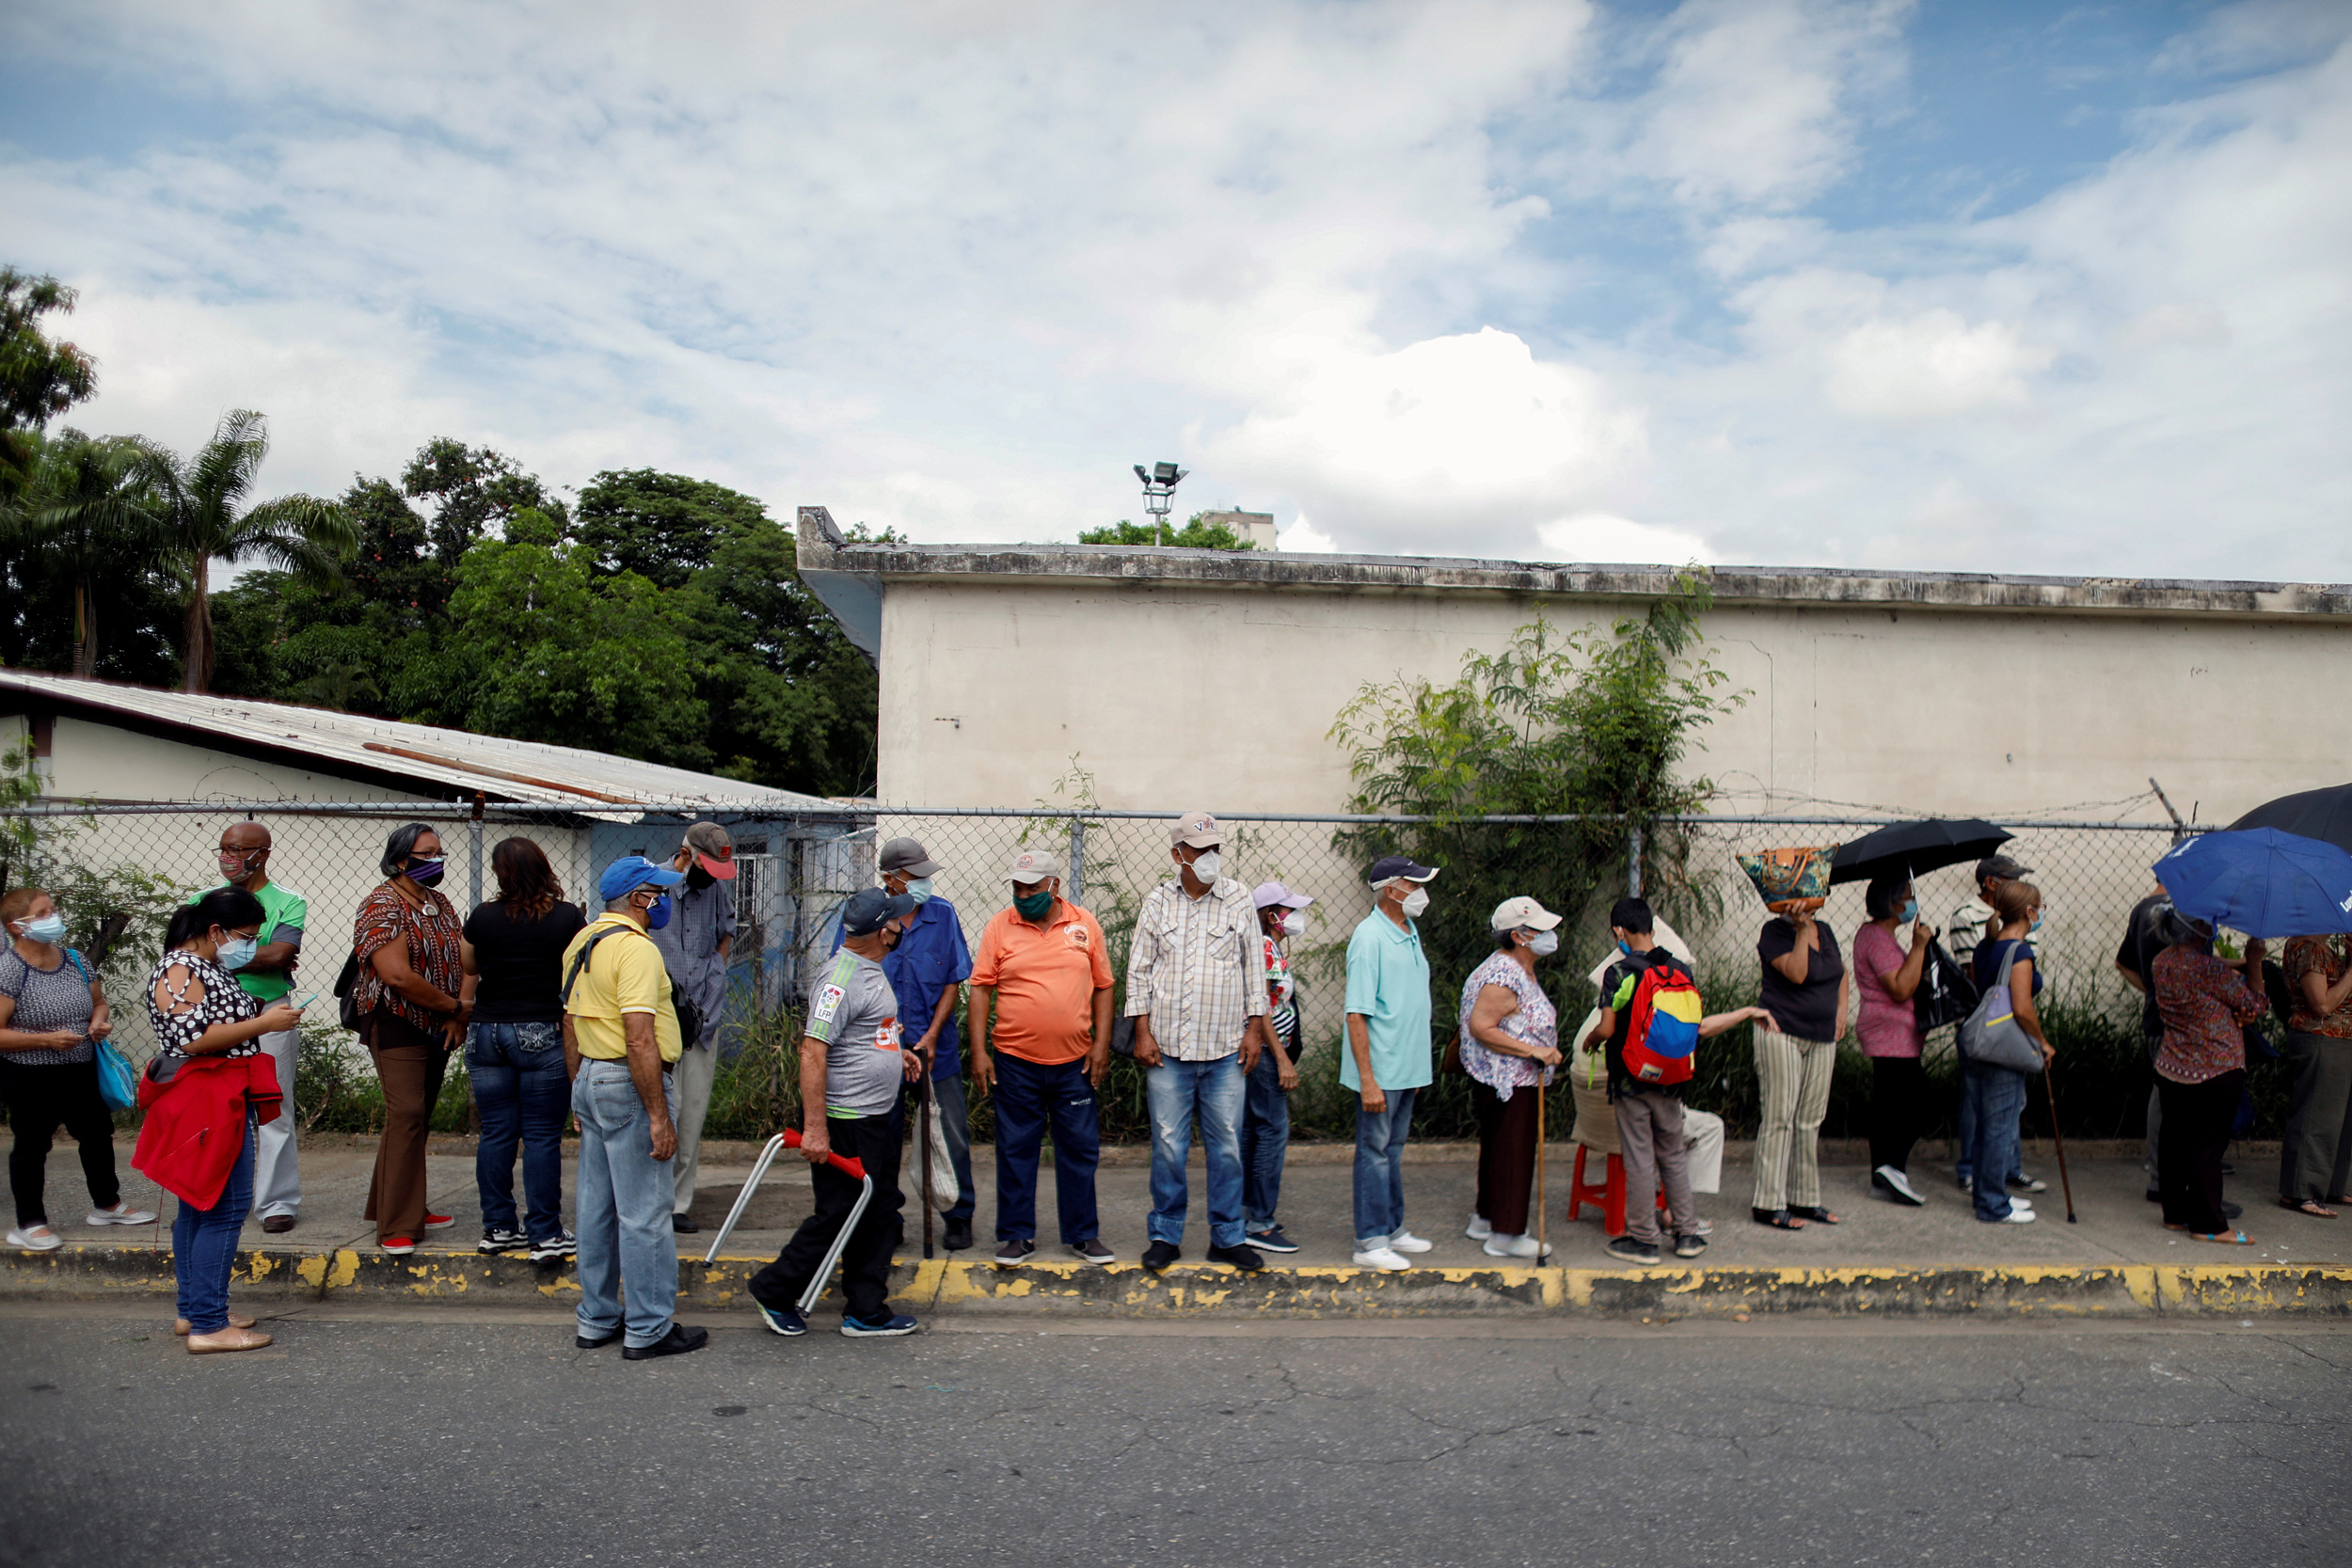 Venezuelans turned away for 2nd shots due to vaccine shortages, groups warn